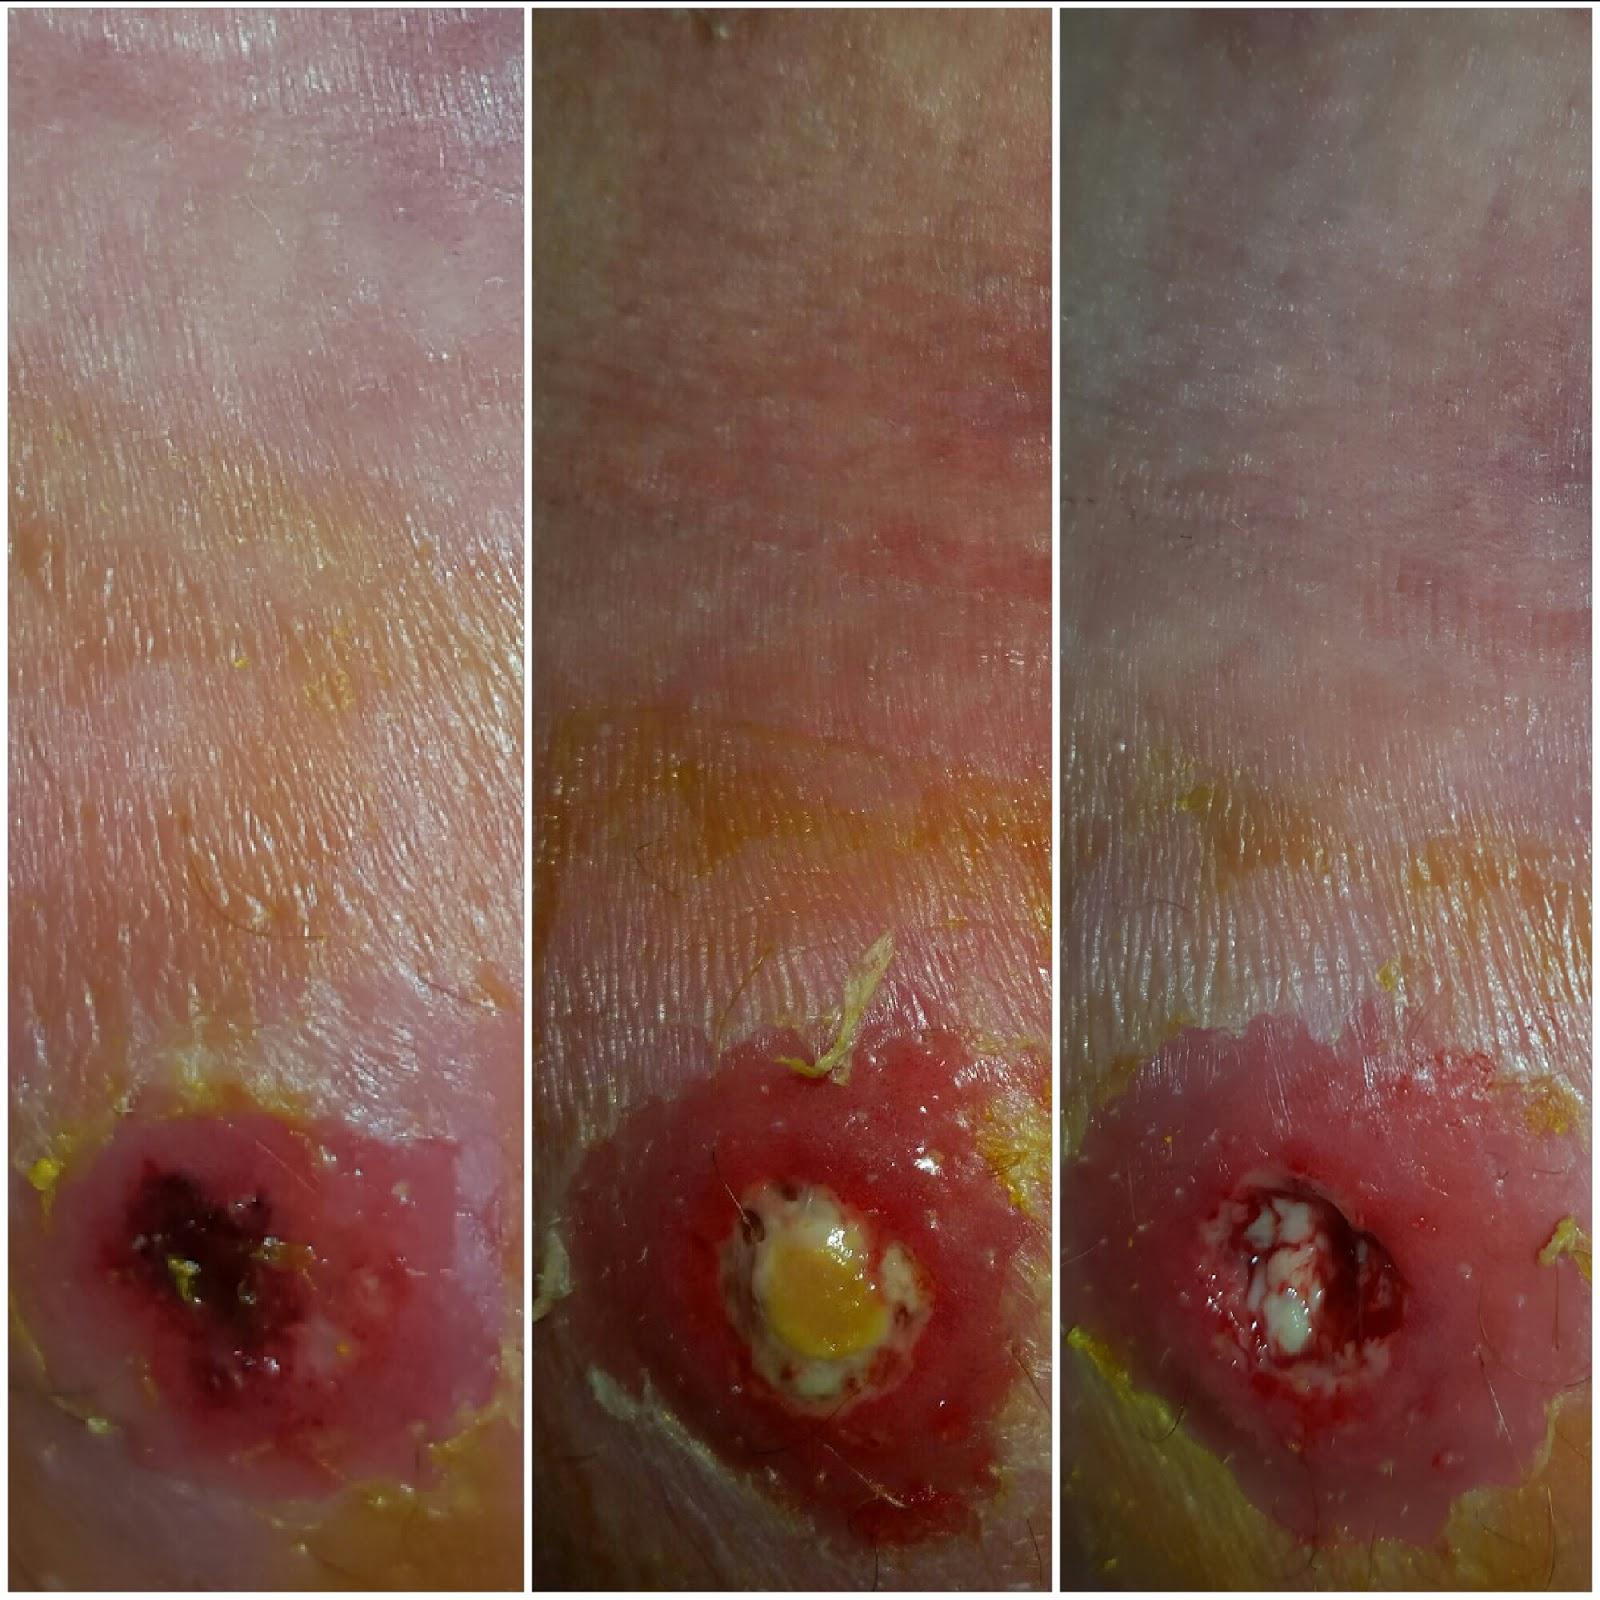 Wound Infection Treatment Natural